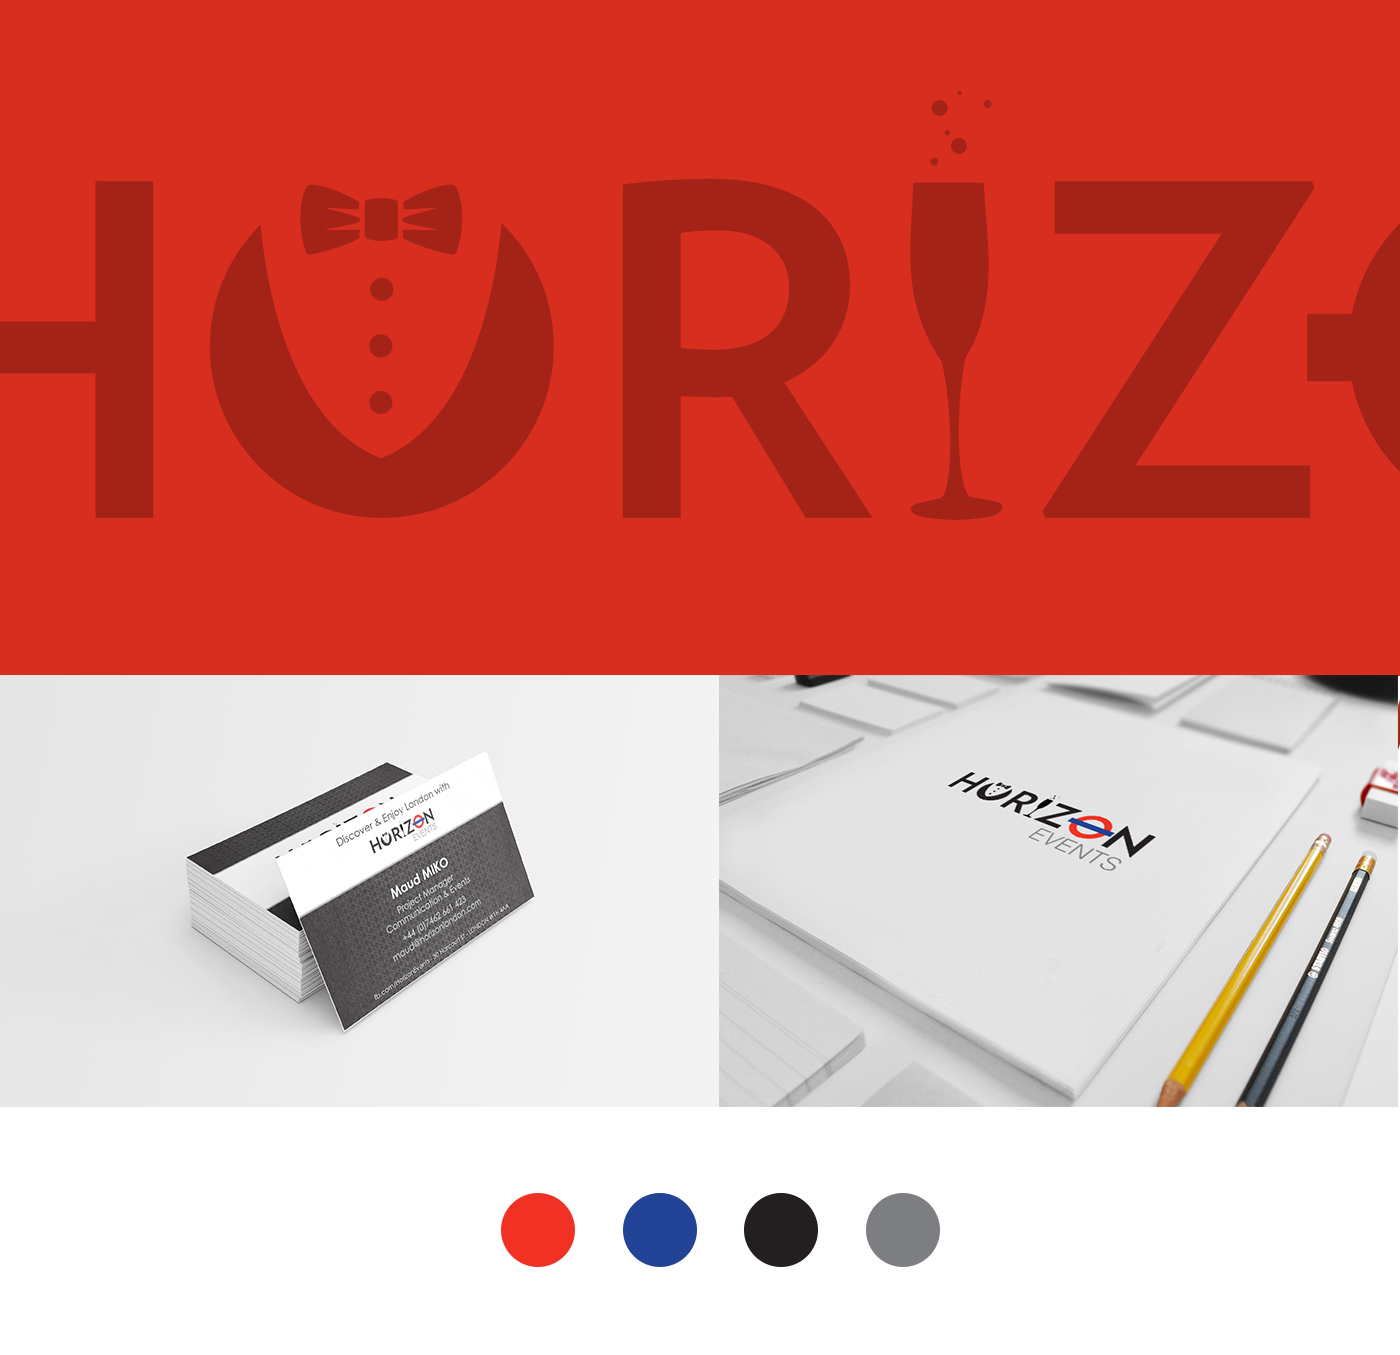 horizon events logo business card project